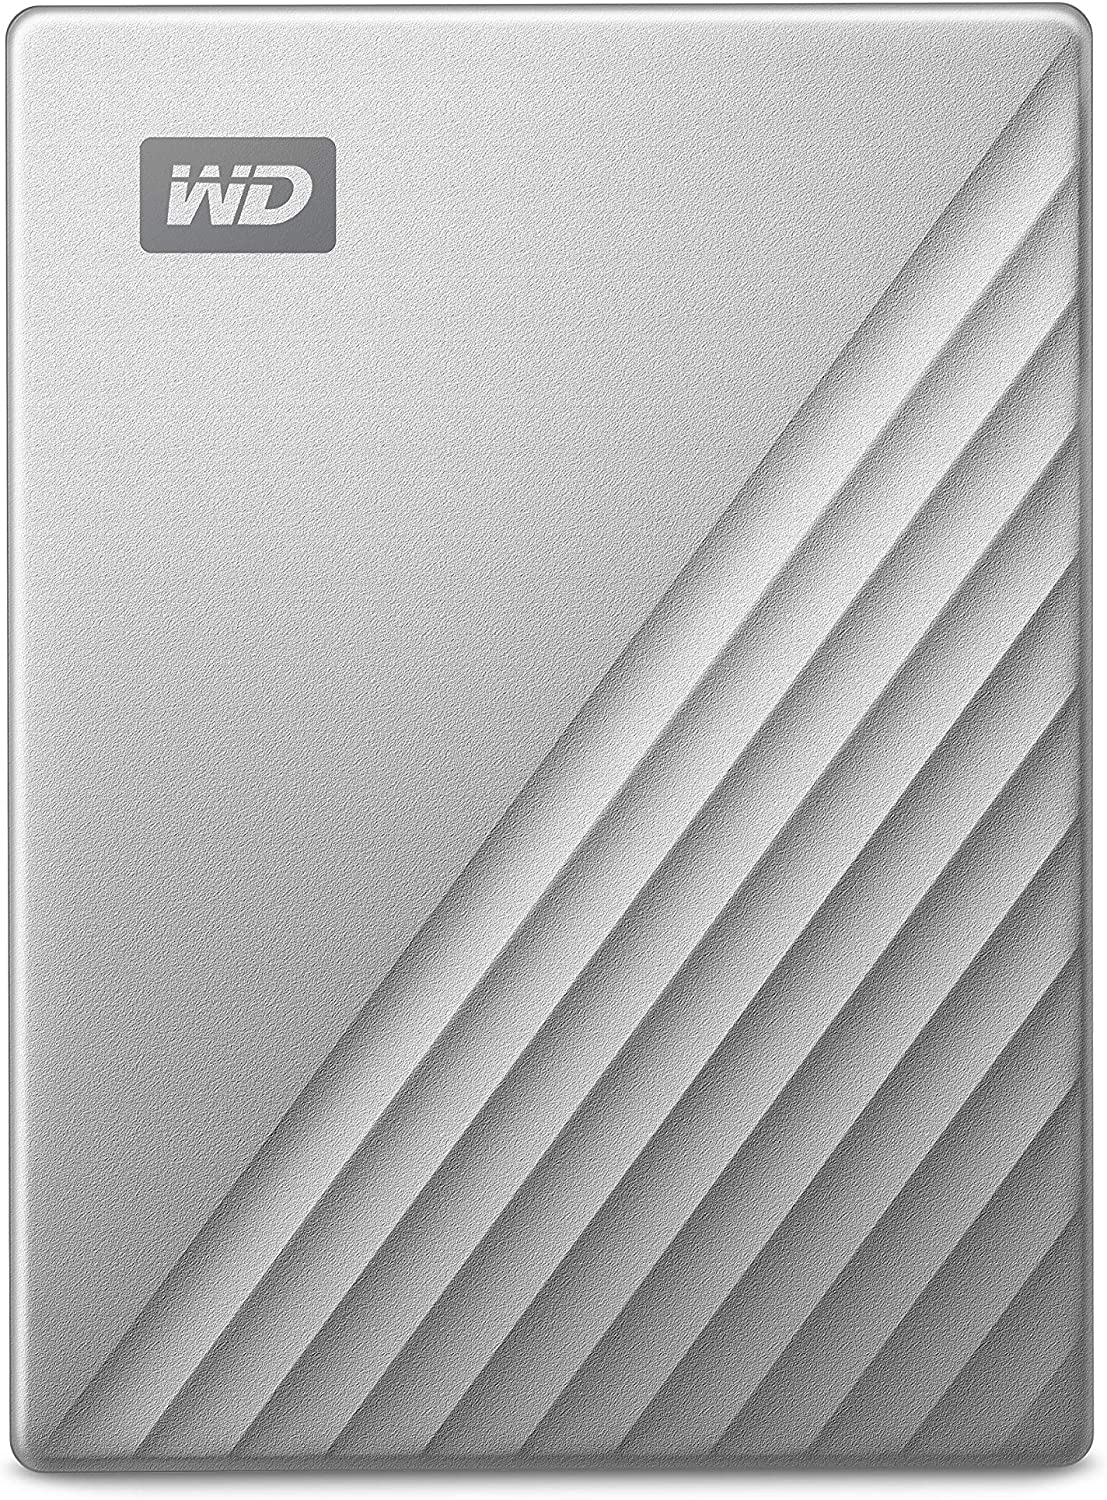 WD 2TB My Passport Ultra for Mac Silver Portable External Hard Drive, USB-C - WDBKYJ0020BSL-WESN